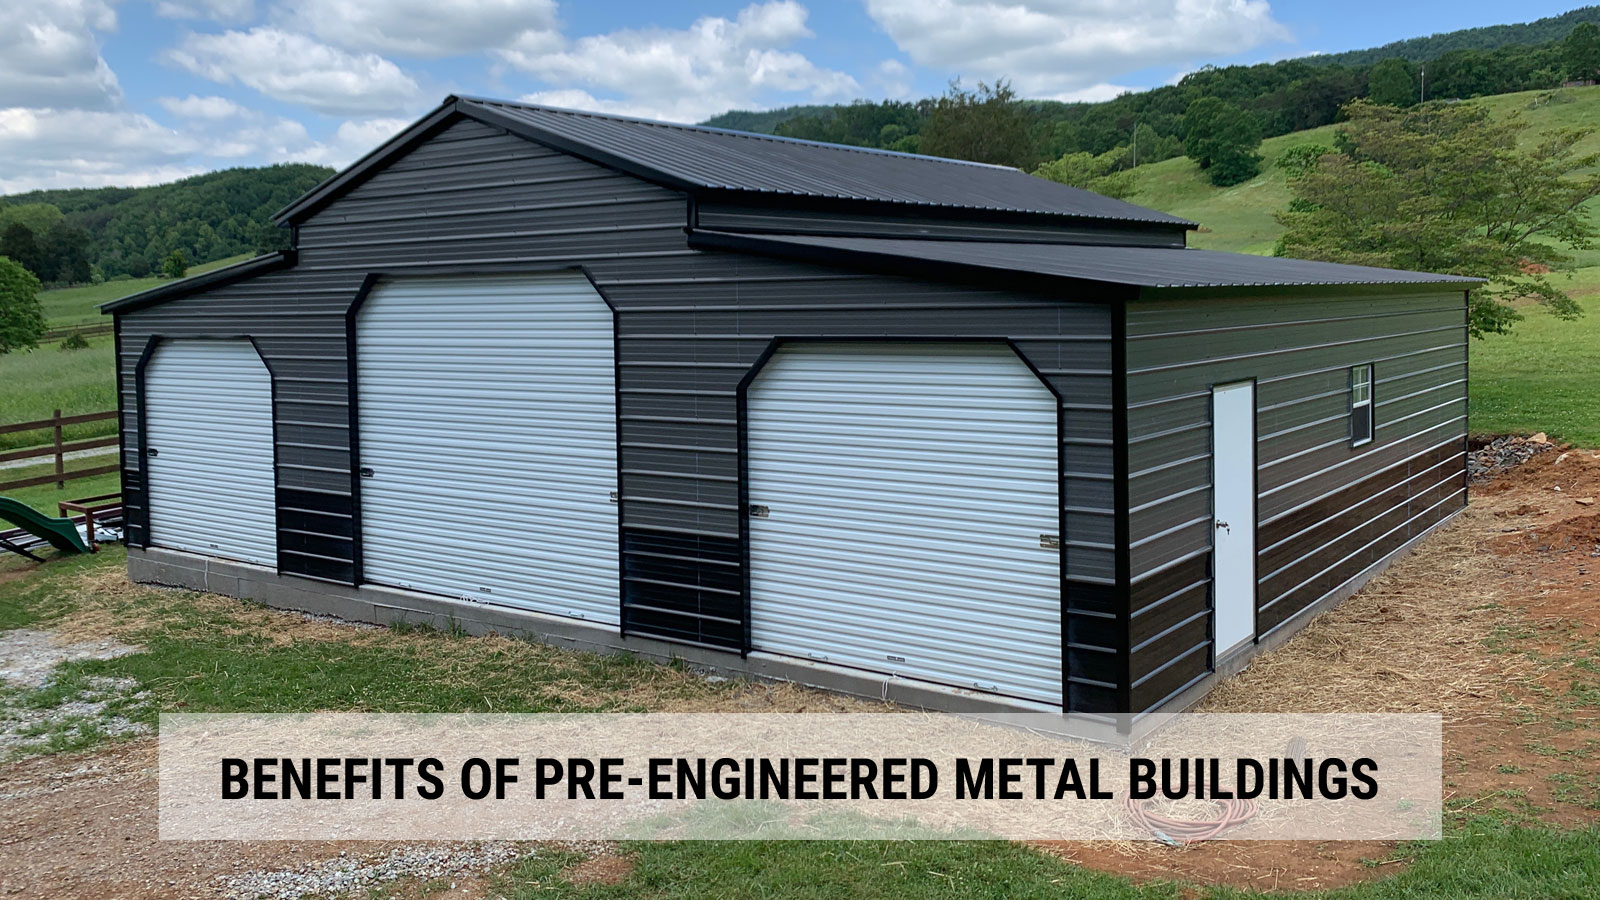 Benefits of Pre-Engineered Metal Buildings